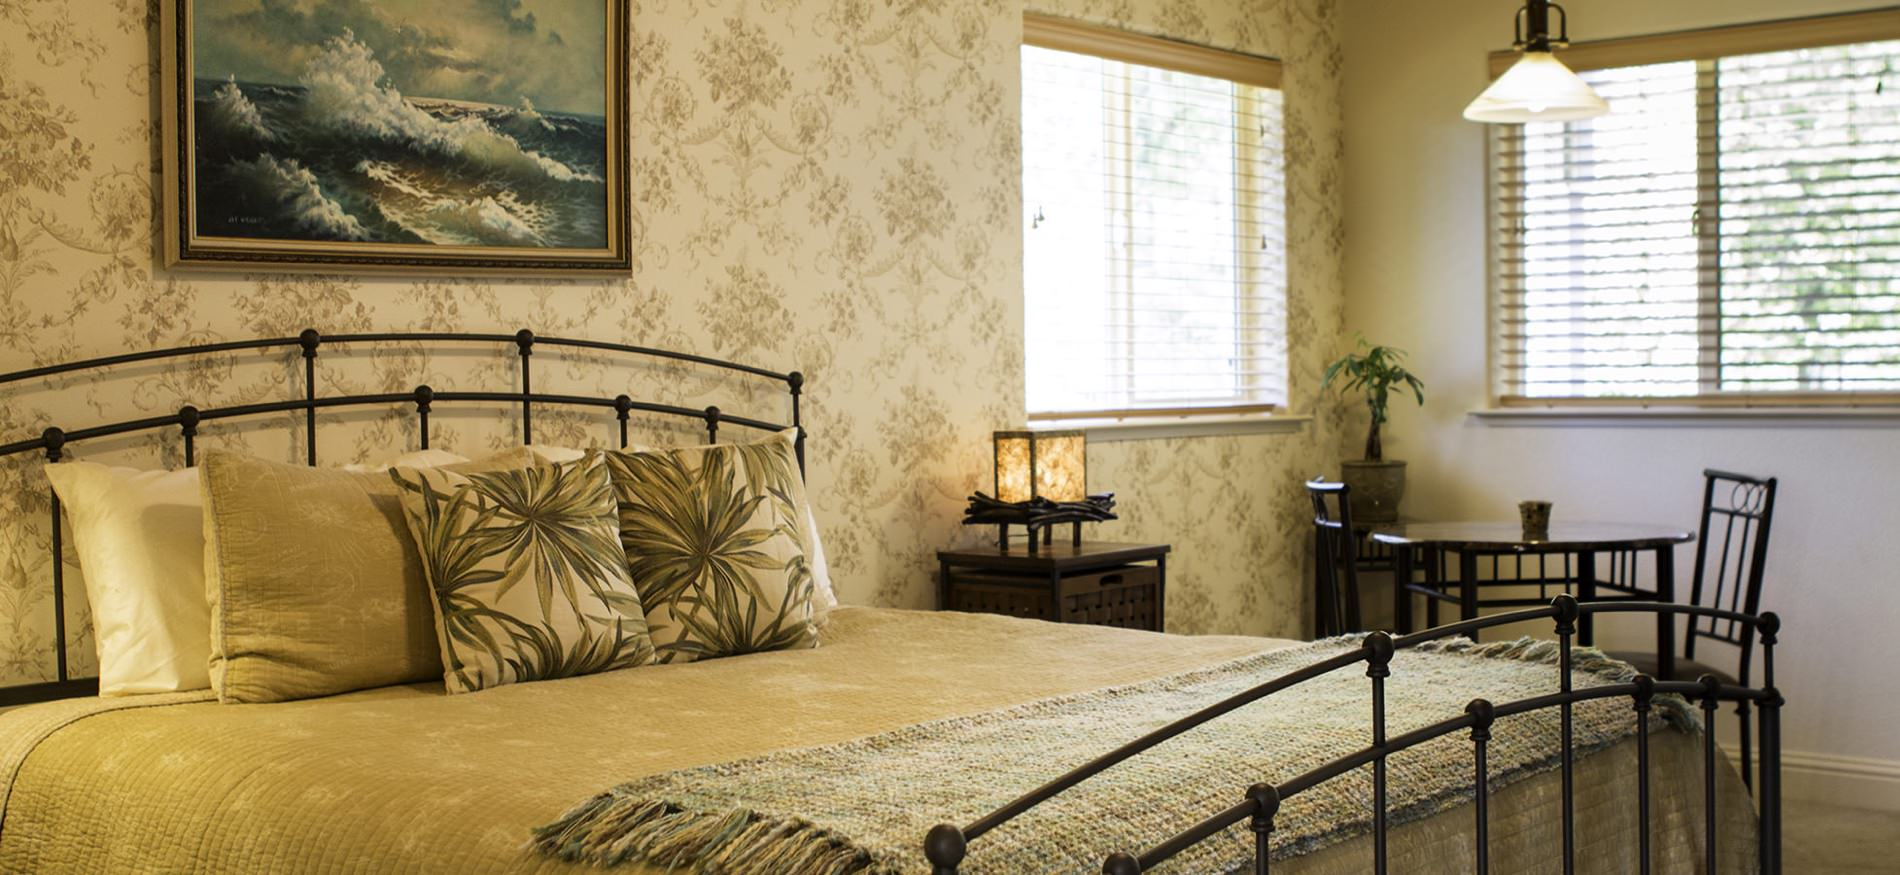 Bedroom with cream floral walls, dark metal bed with gold bedspread, nightstand with lamp and small table and chairs